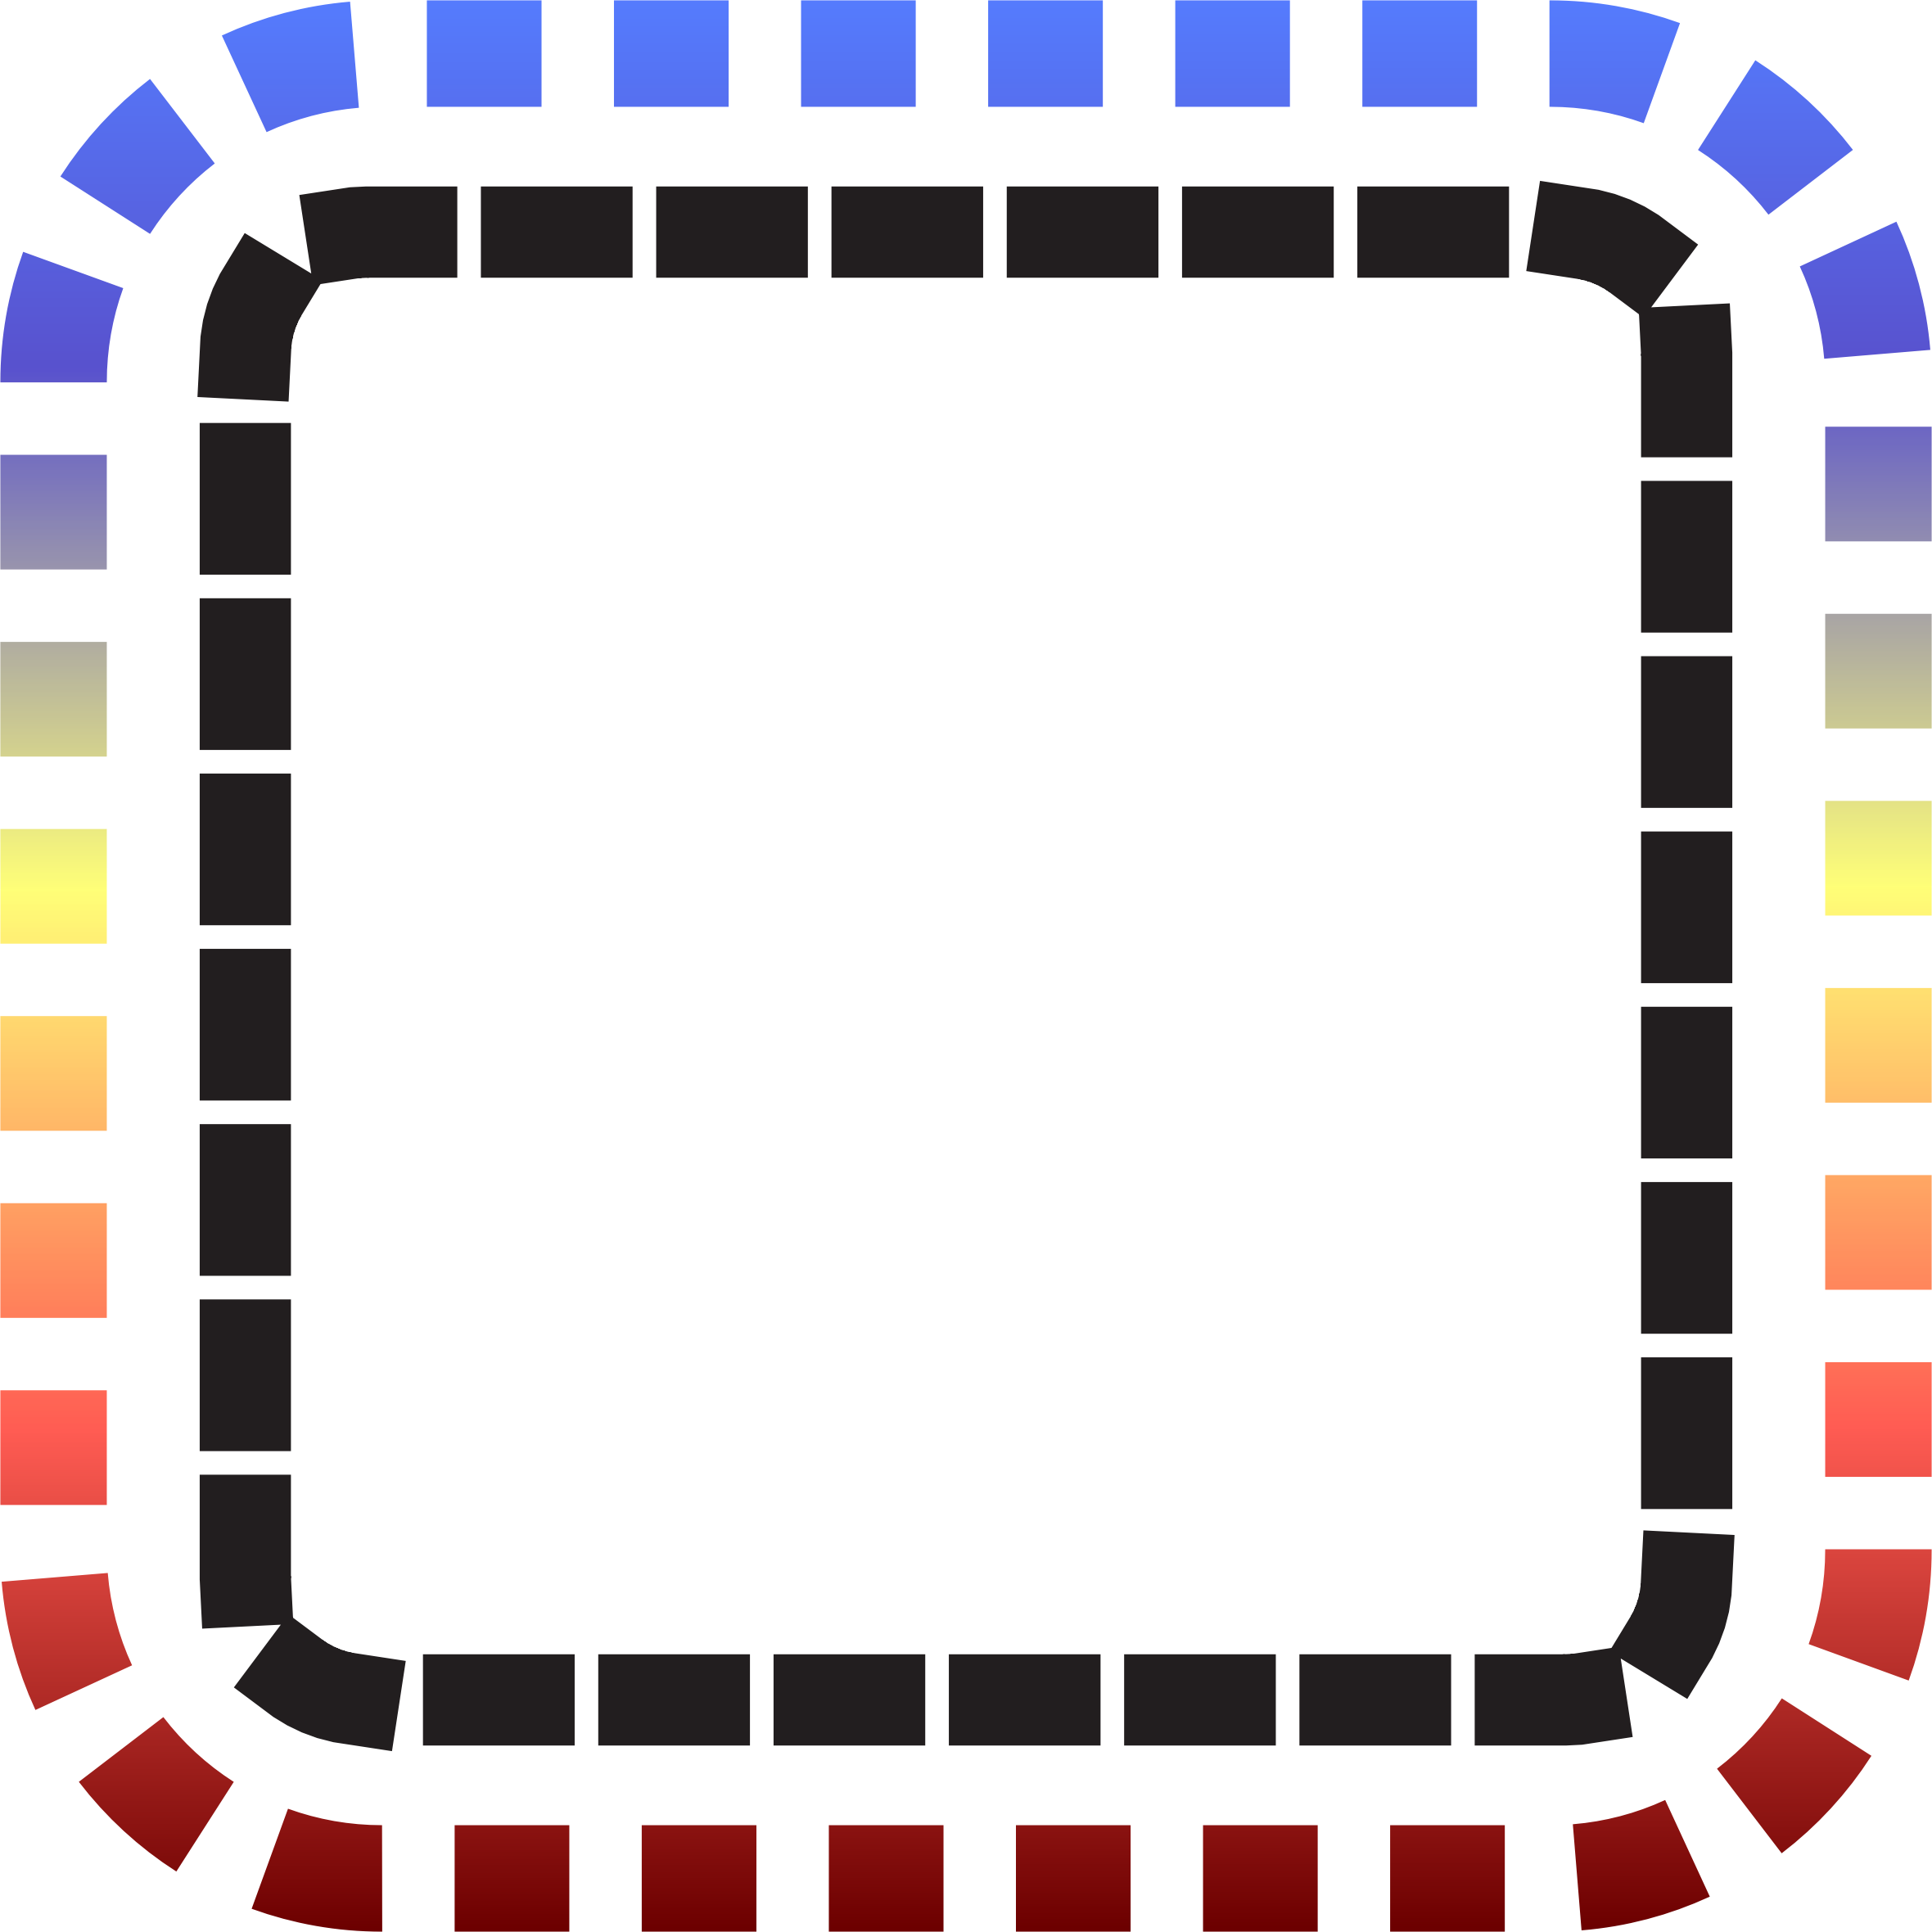 Frame clipart colorful. Big image png